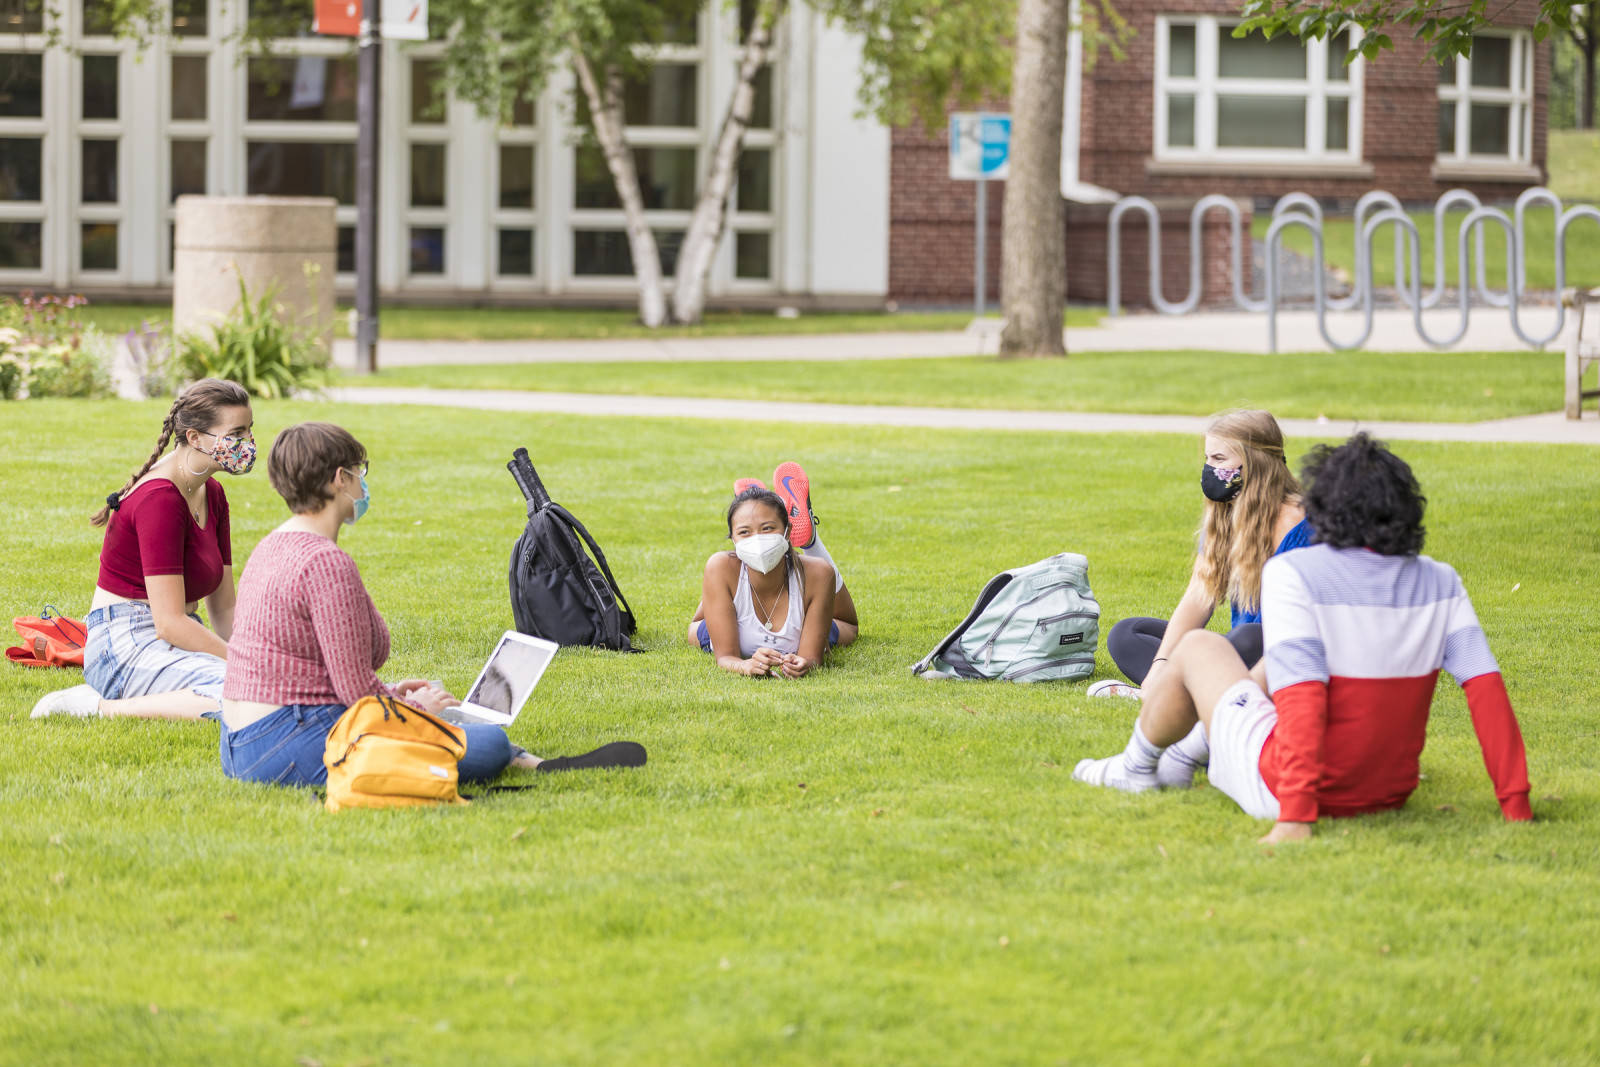 Macalester students in sitting on the lawn in a circle